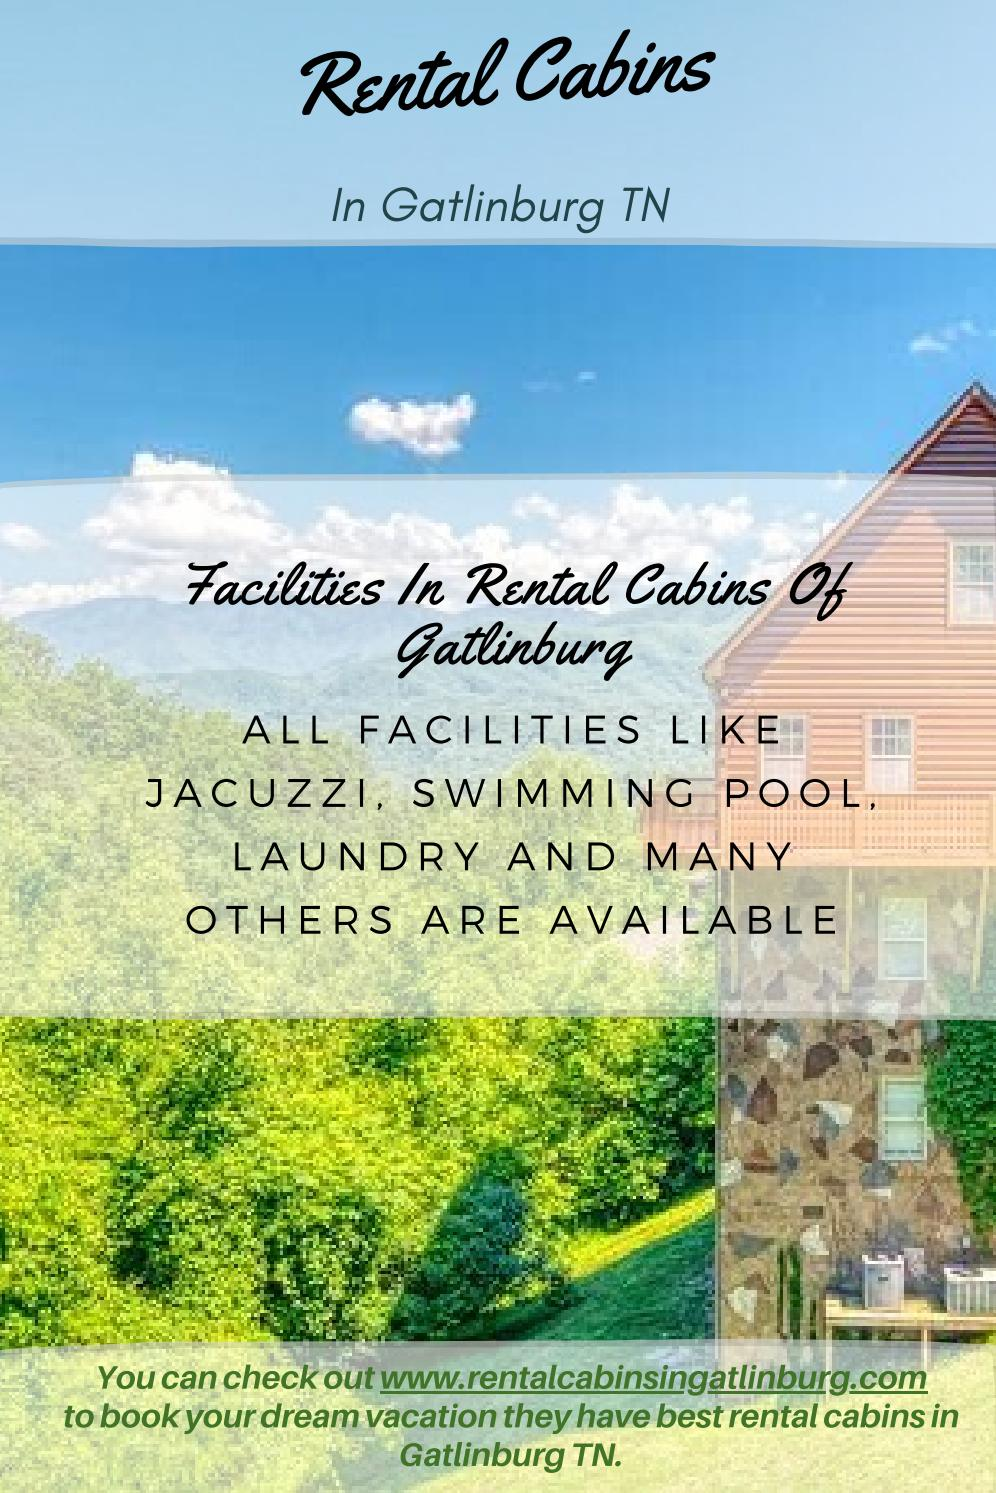 Cabins For Sale In Gatlinburg Tn By Owner : cabins, gatlinburg, owner, Rental, Cabins, Gatlinburg, Barry, Gilbert, Issuu